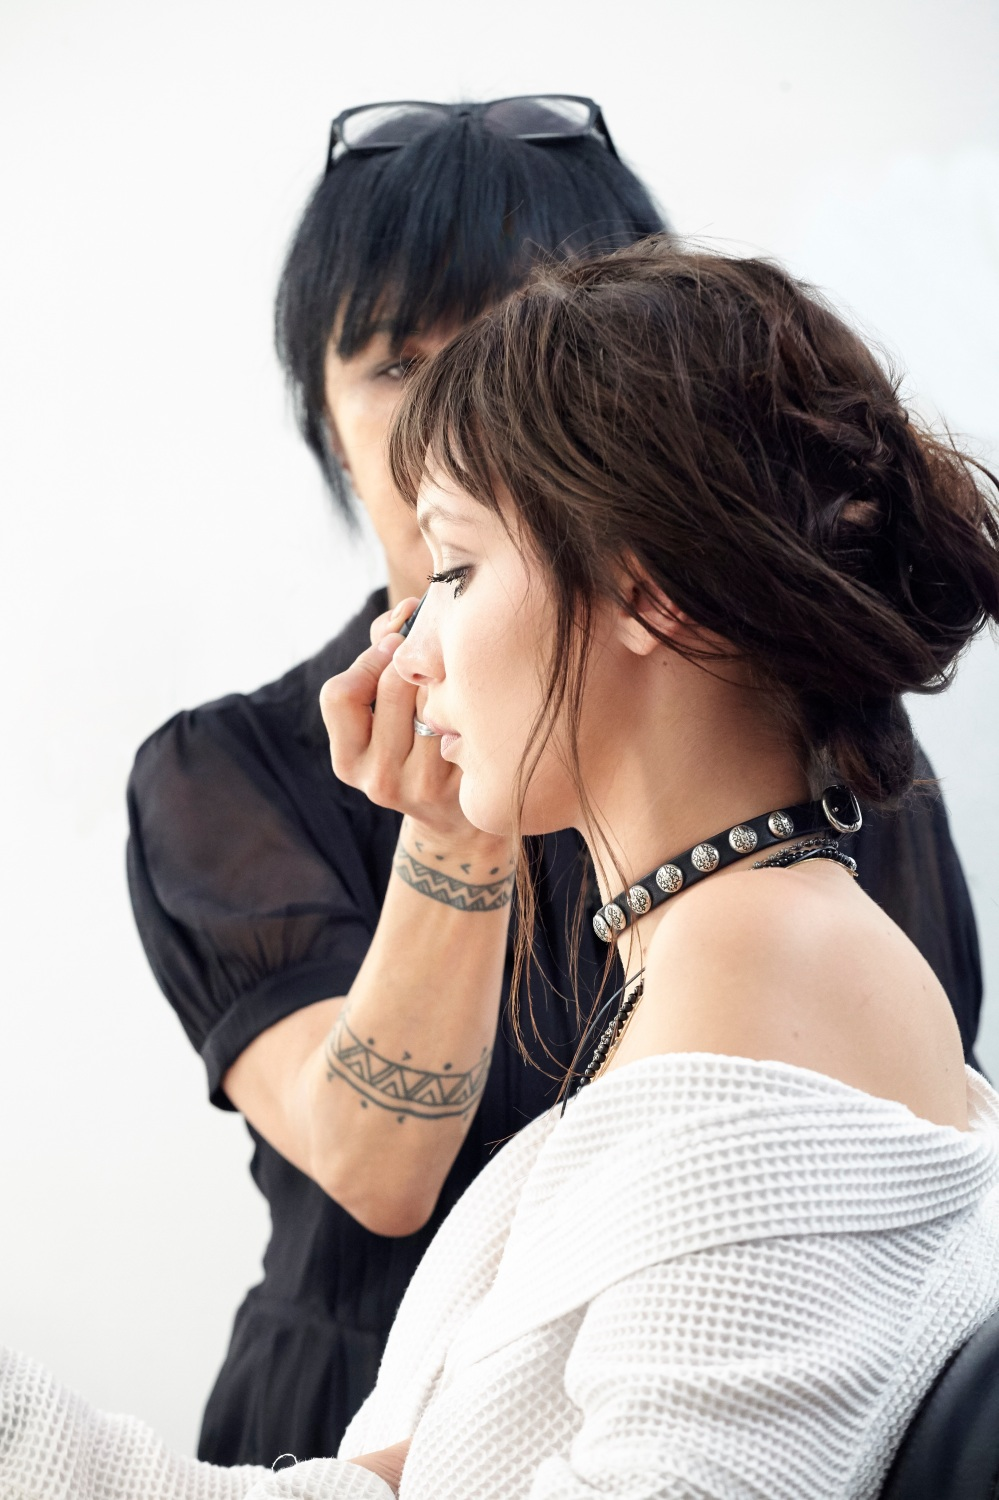 NARS Highlighting Bronzing Collection - Campaign BTS - Image 2 - jpeg copy